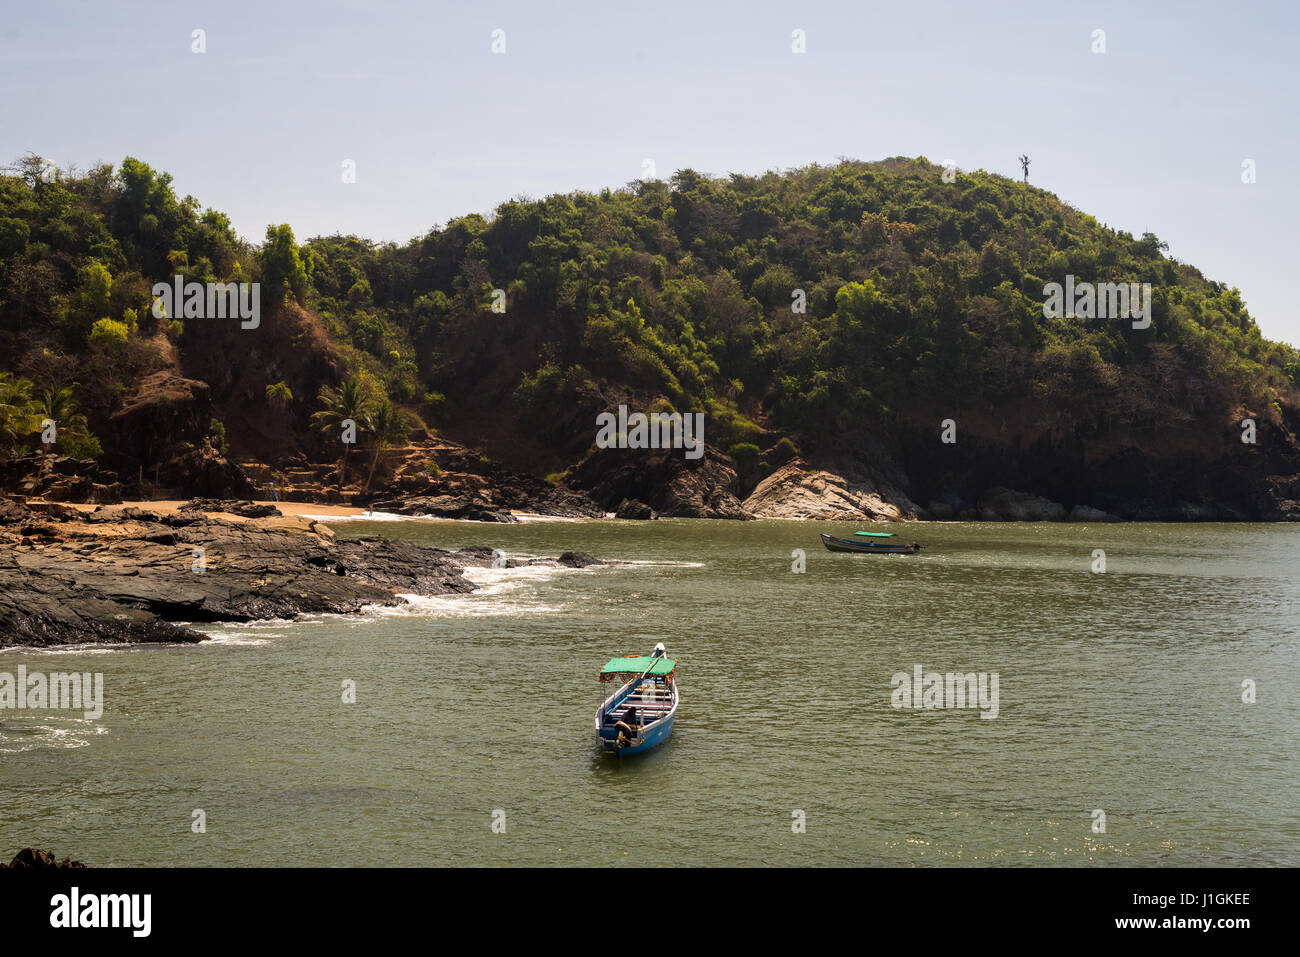 Boat approaching shore - Stock Image